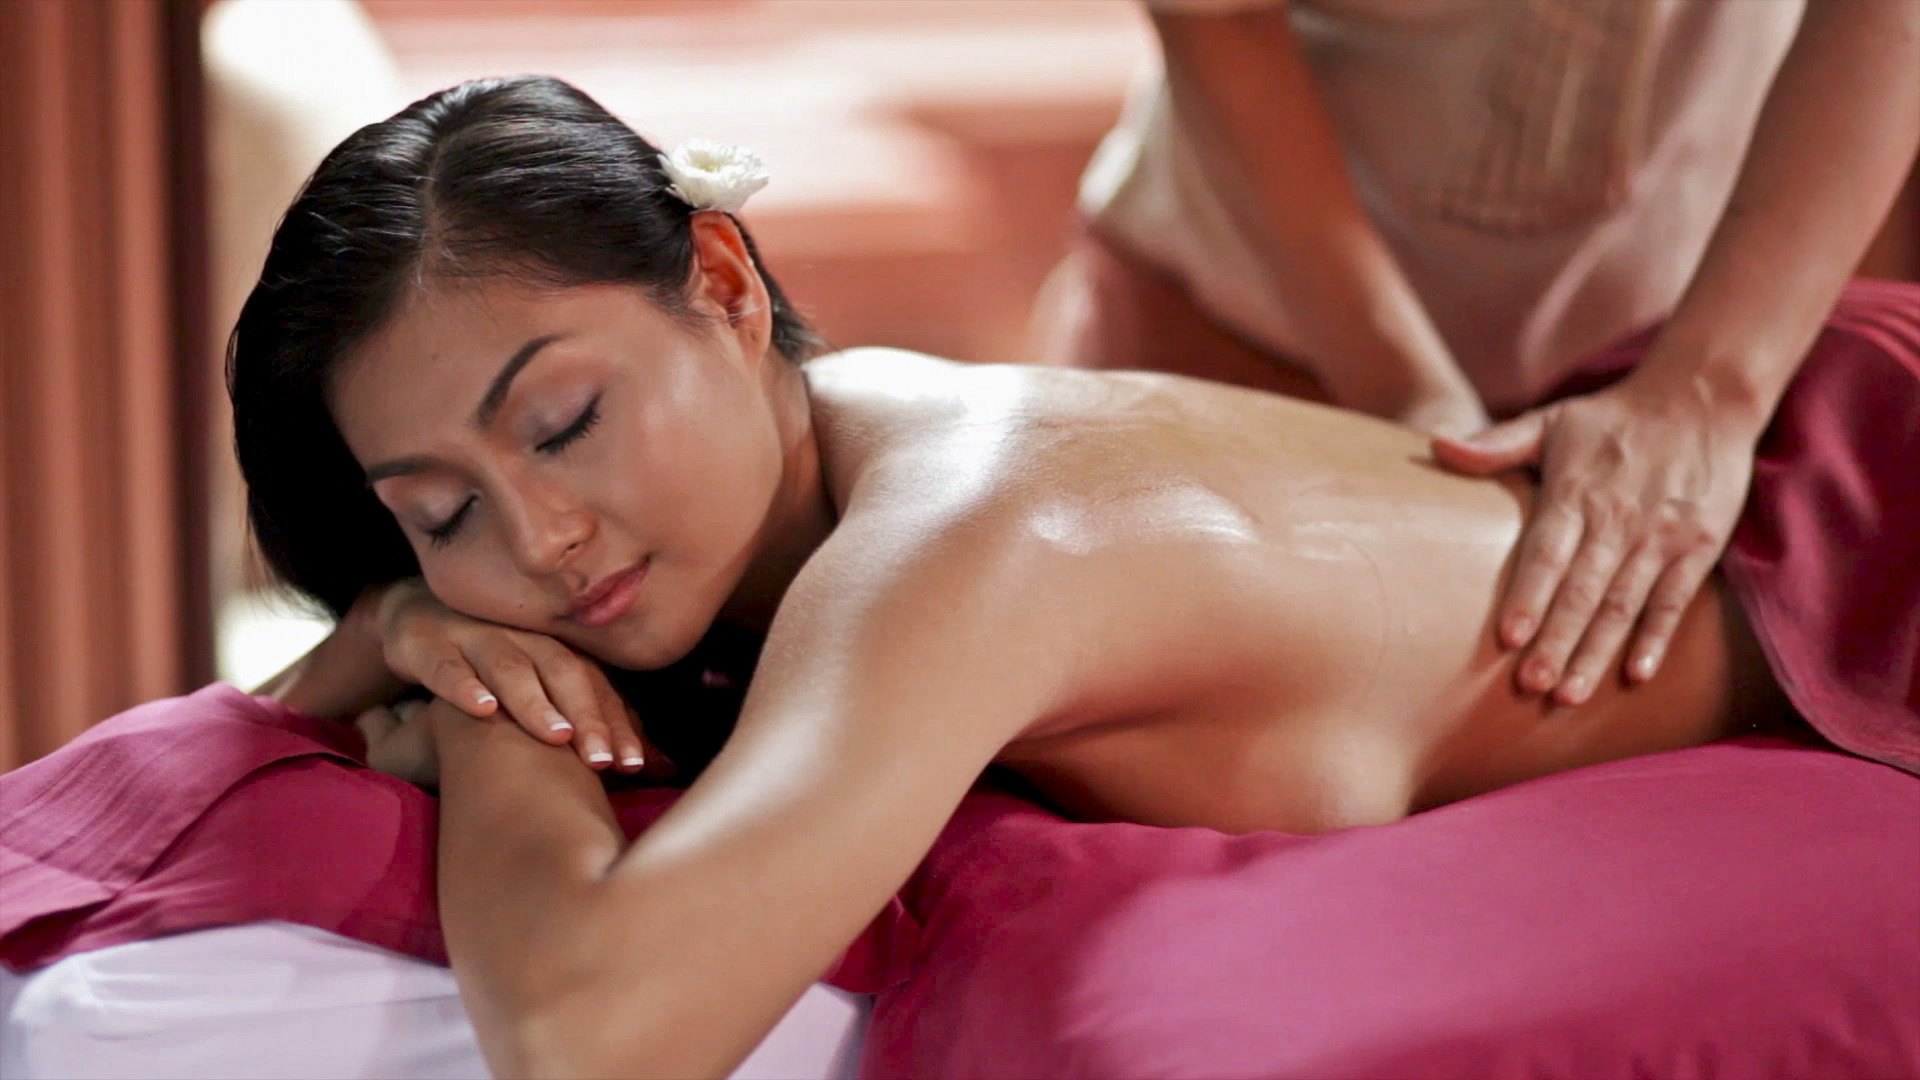 hjemmevideo sex wellness thai massage